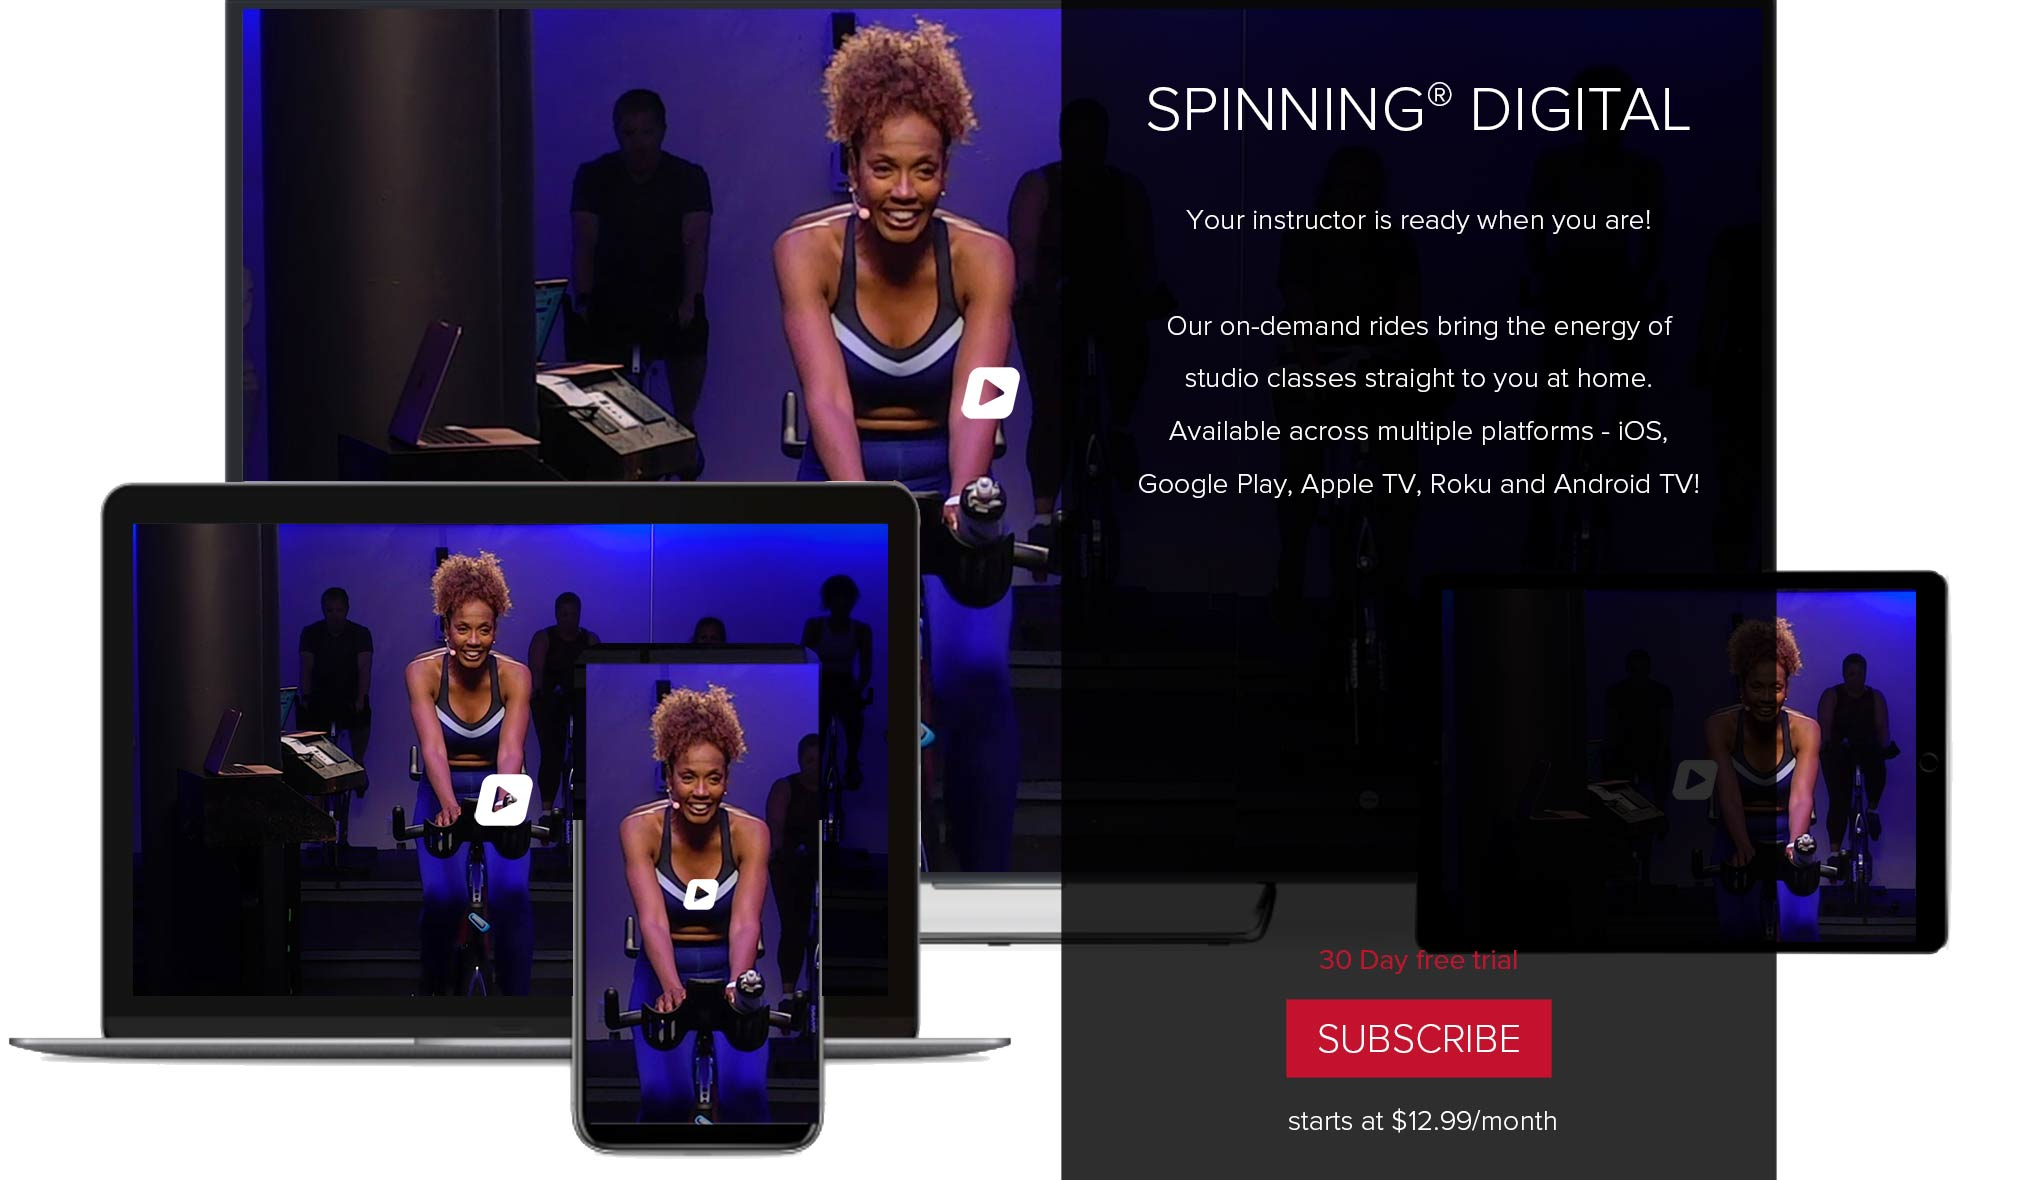 Spinning® Digital. Your instructor is ready when you are! Our on-demand rides bring the energy of home studio classes straight to you at home. Available across multiple platform - iOS, Google Play, Apple TV, Roku and Android TV! 30 Day free trail. Subscribe. $12.99/month